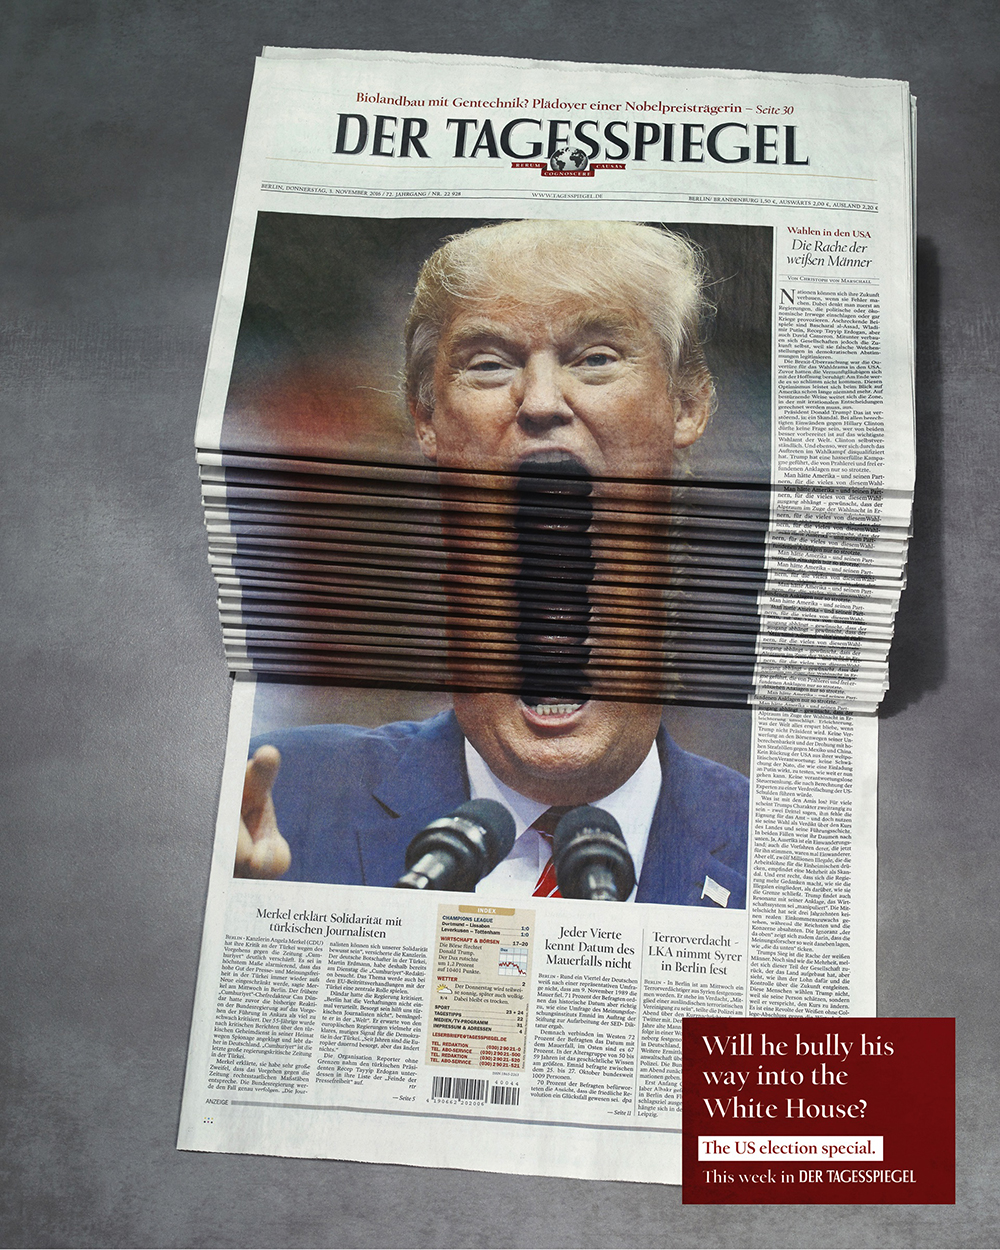 der-tagesspiegel-donald-trump-us-elections-white-house-creative-journal-cover-scholz-friends-agency